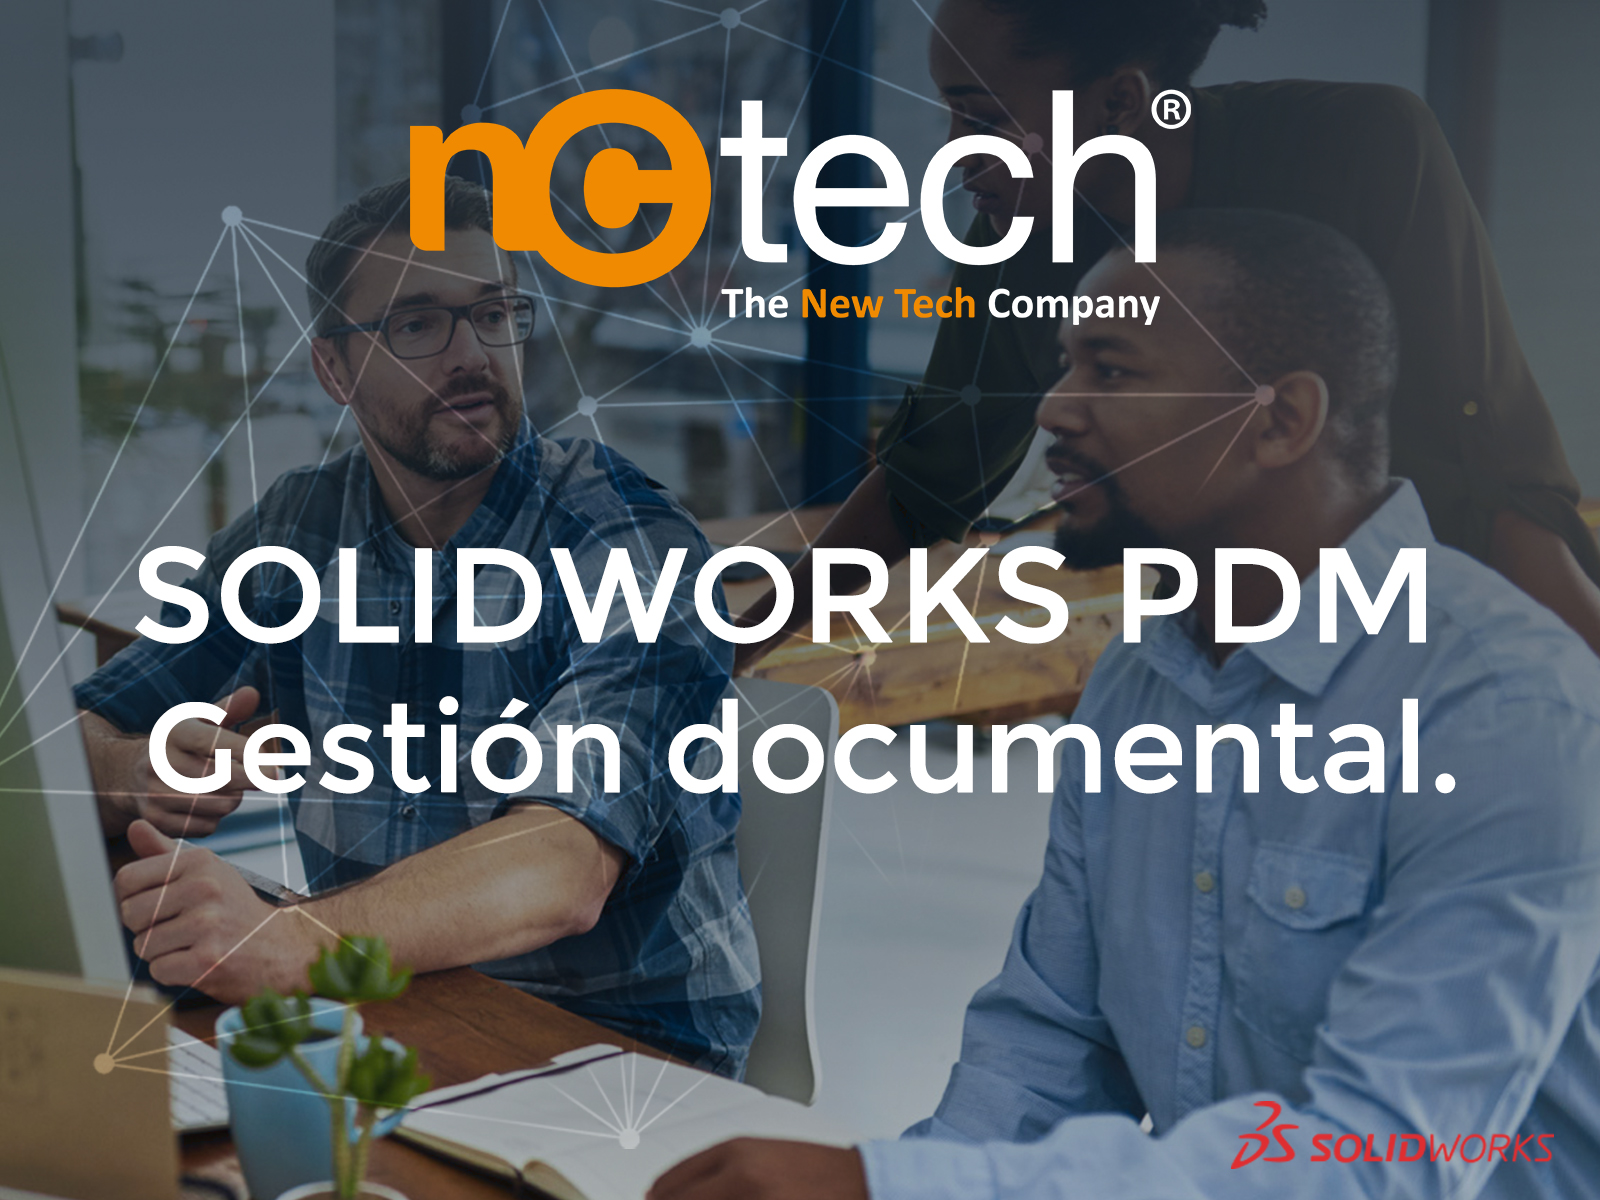 SOLIDWORKS PDM Gestión documental